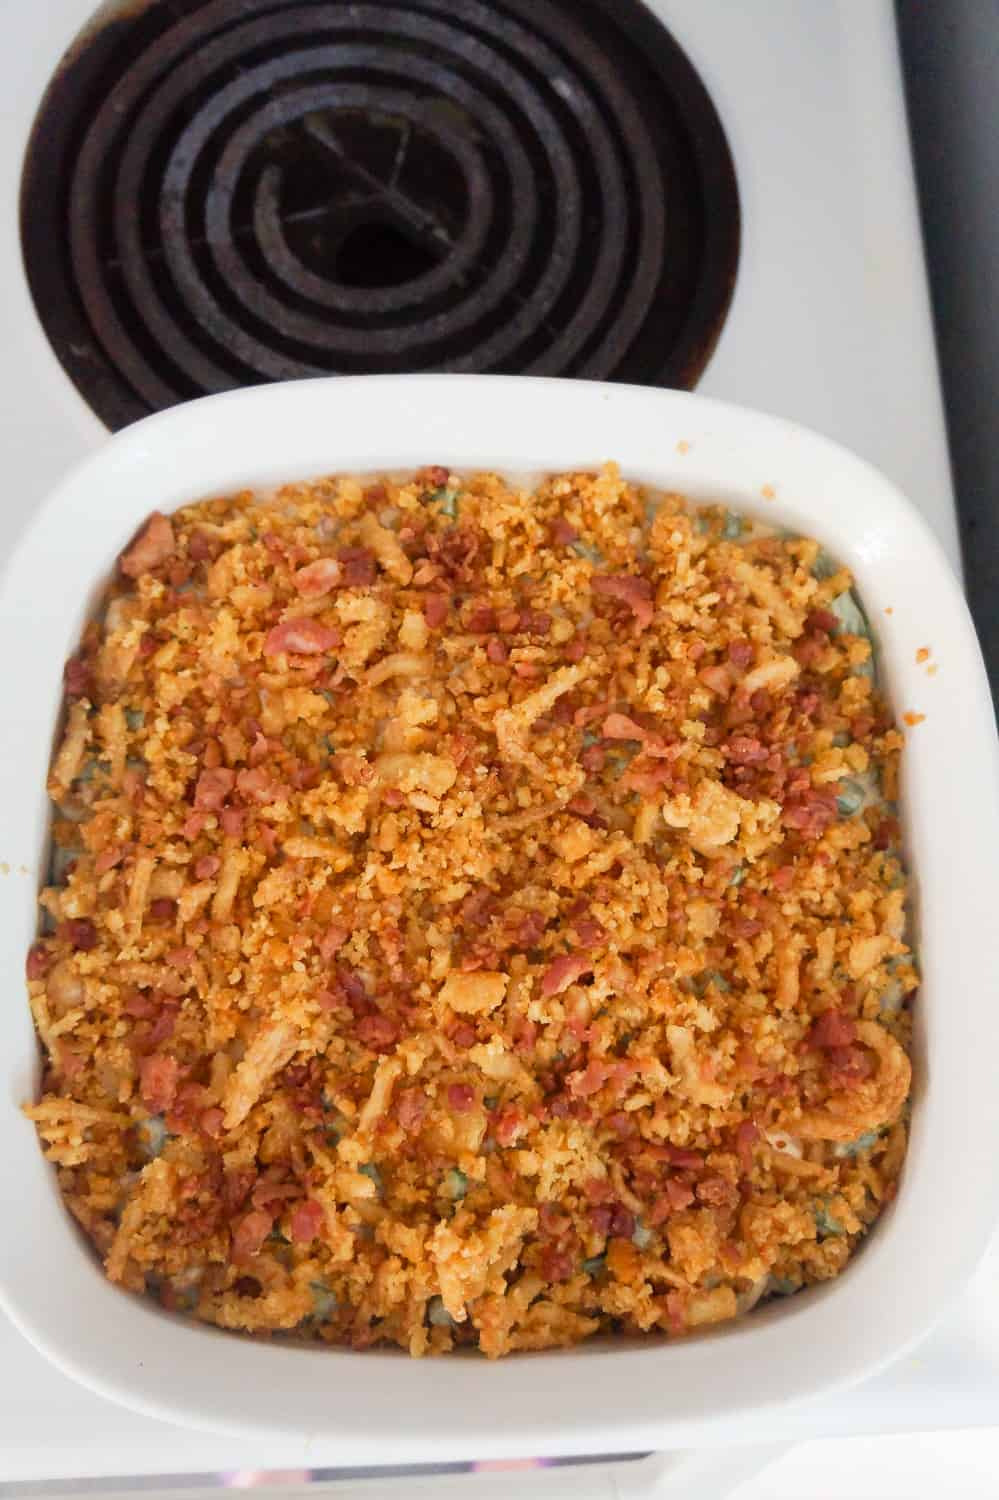 Ritz cracker and fried onions on top of green bean casserole in baking dish